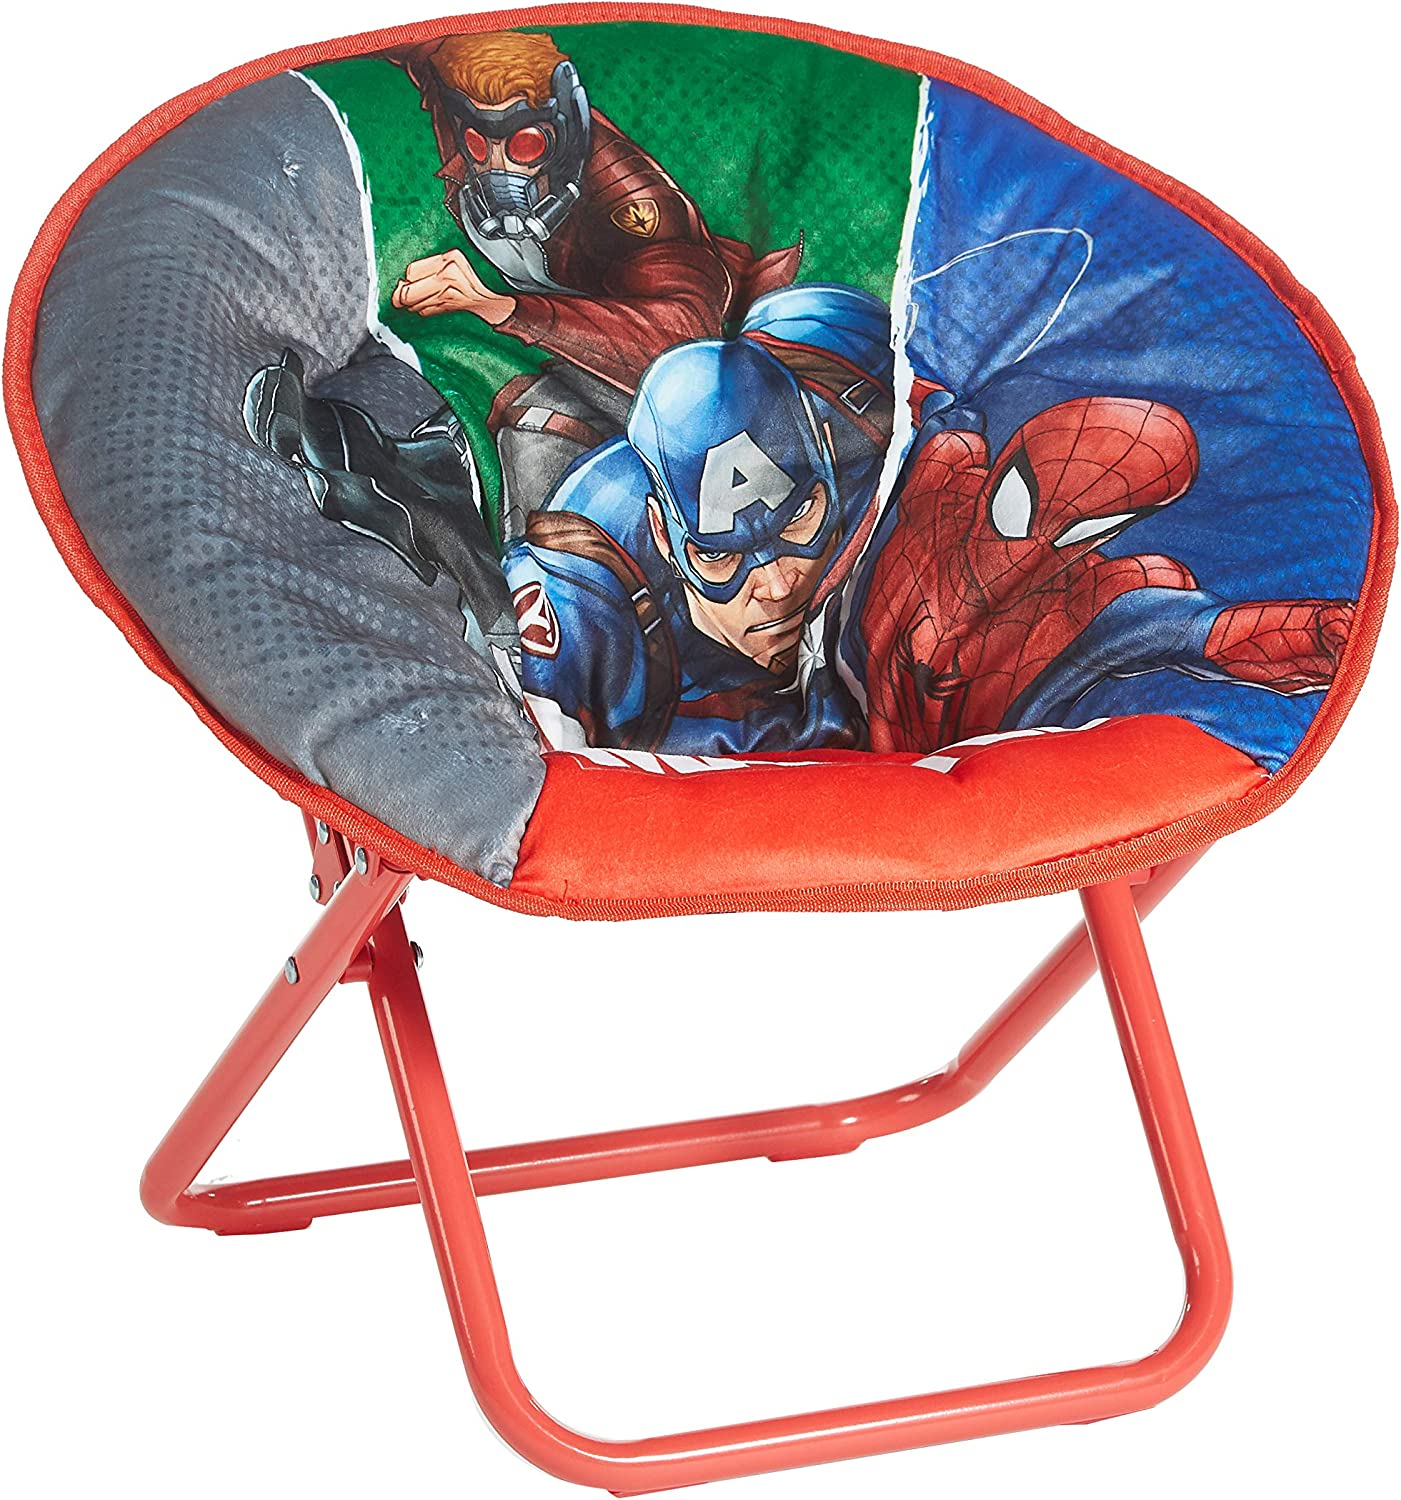 Amazon Com Avengers Toddler Saucer Chair Toys Games